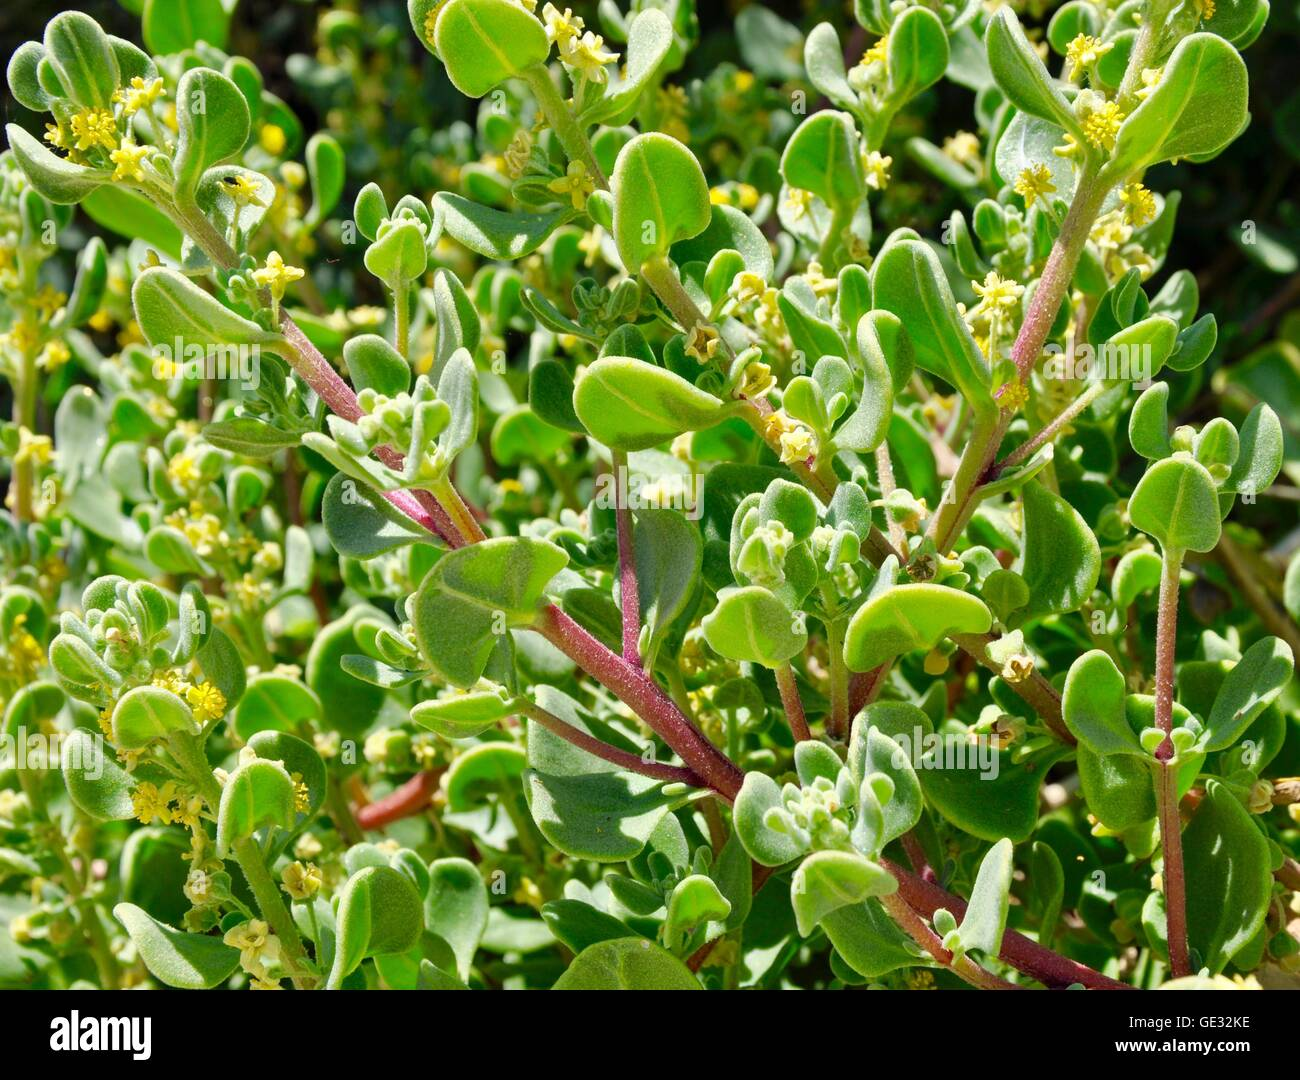 Coastal dune weed with velvety green leaves, red stems and yellow stamens at Point Peron in Western Australia. - Stock Image